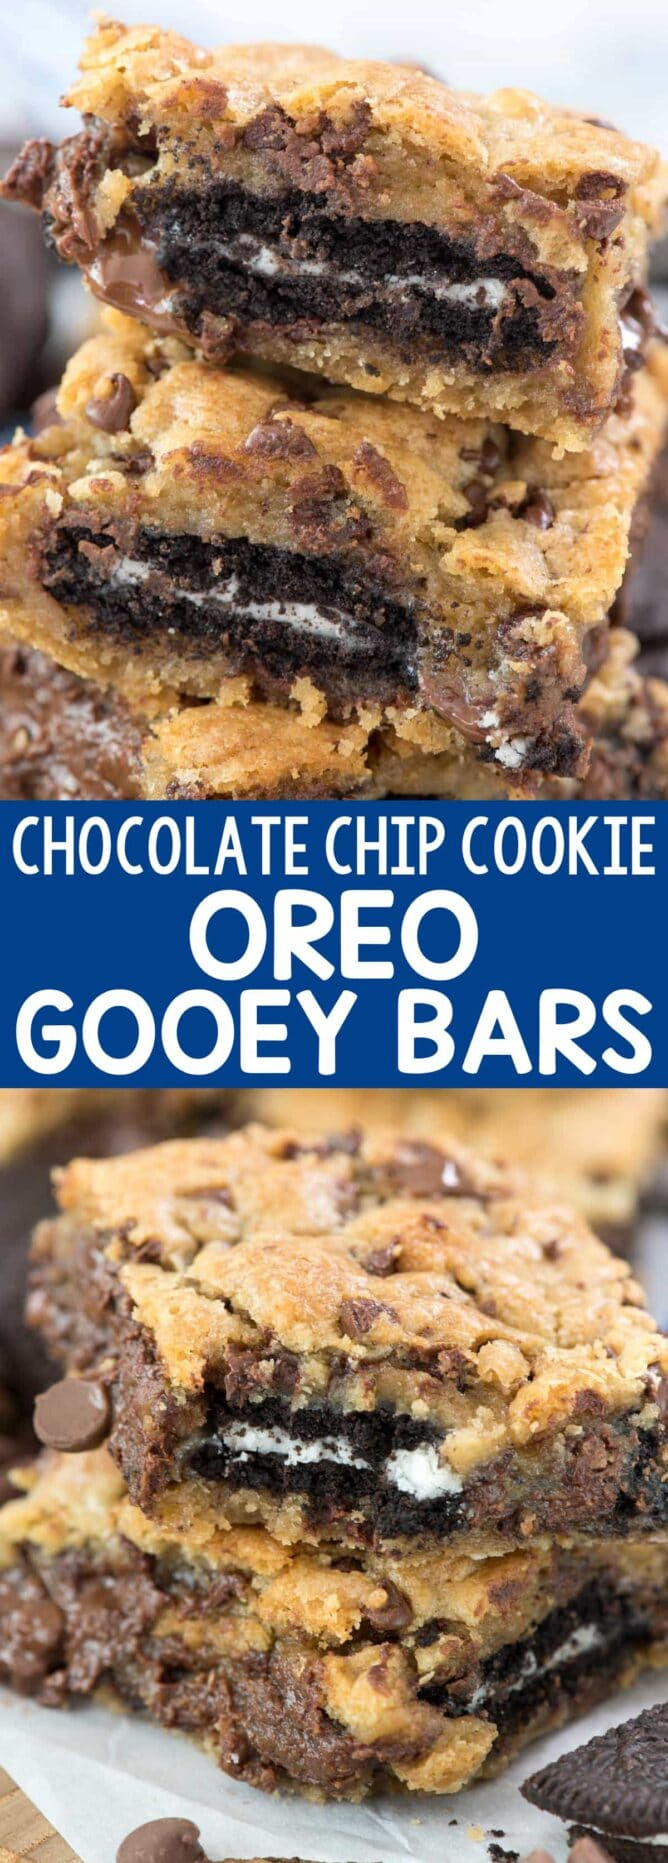 Oreo Stuffed Chocolate Chip Cookie Gooey Bars - collage photo